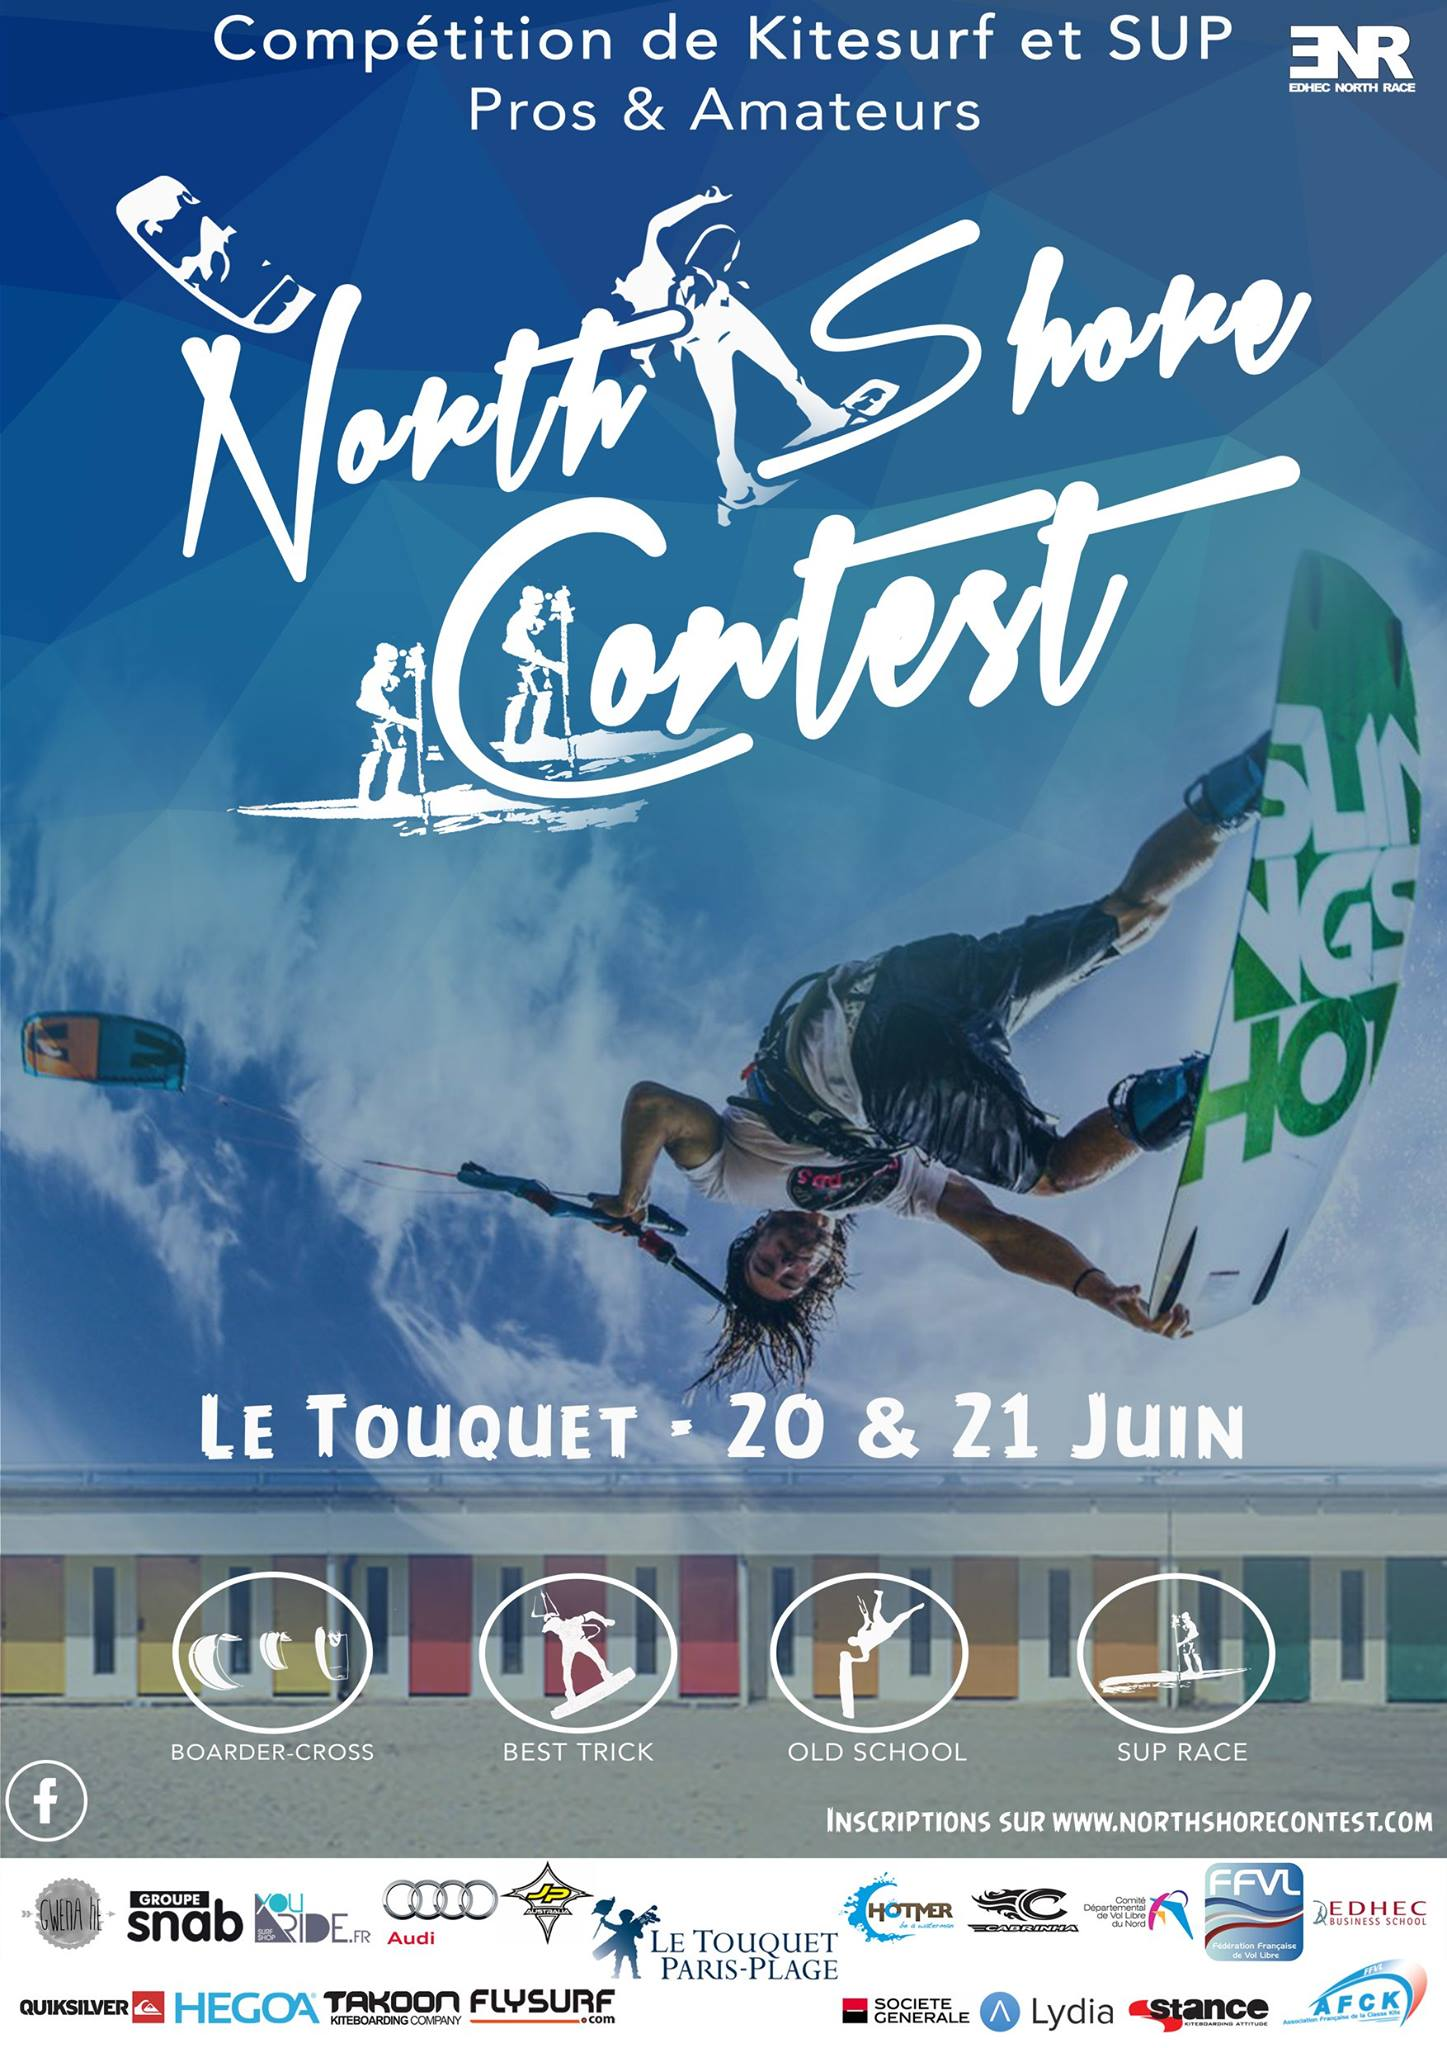 NORTH SHORE CONTEST 2015